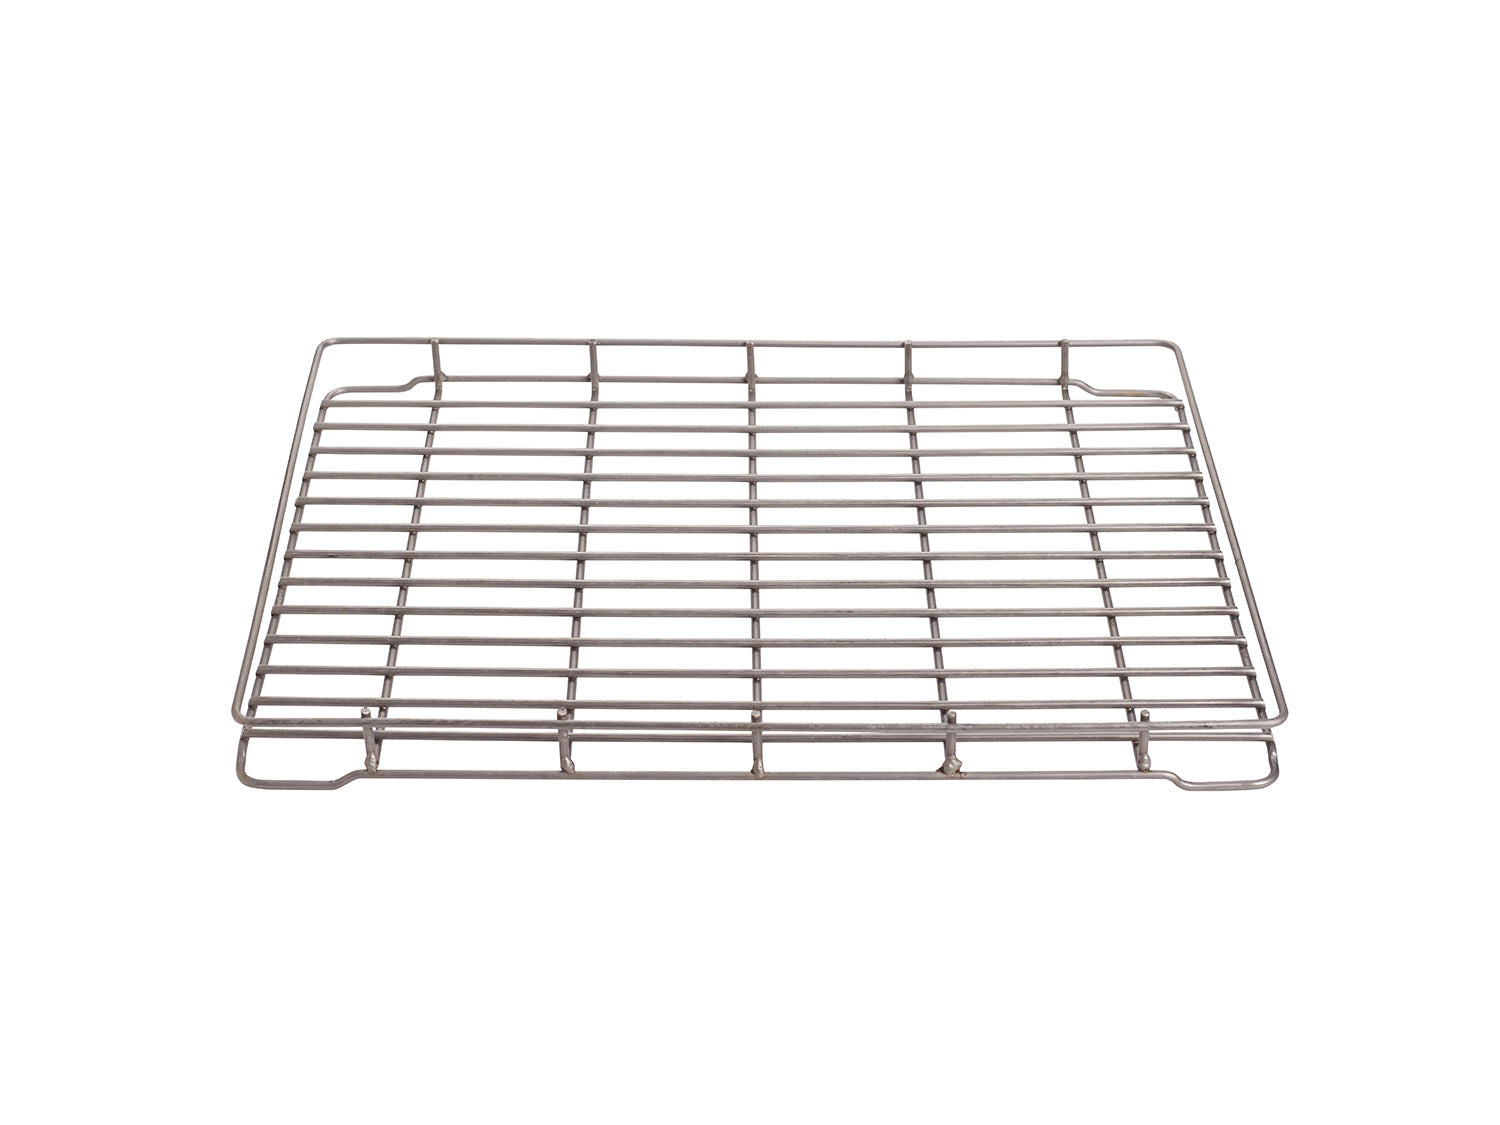 Hot Rock Basket - 3&4 Burner Models (42x31cm) - OUT370420